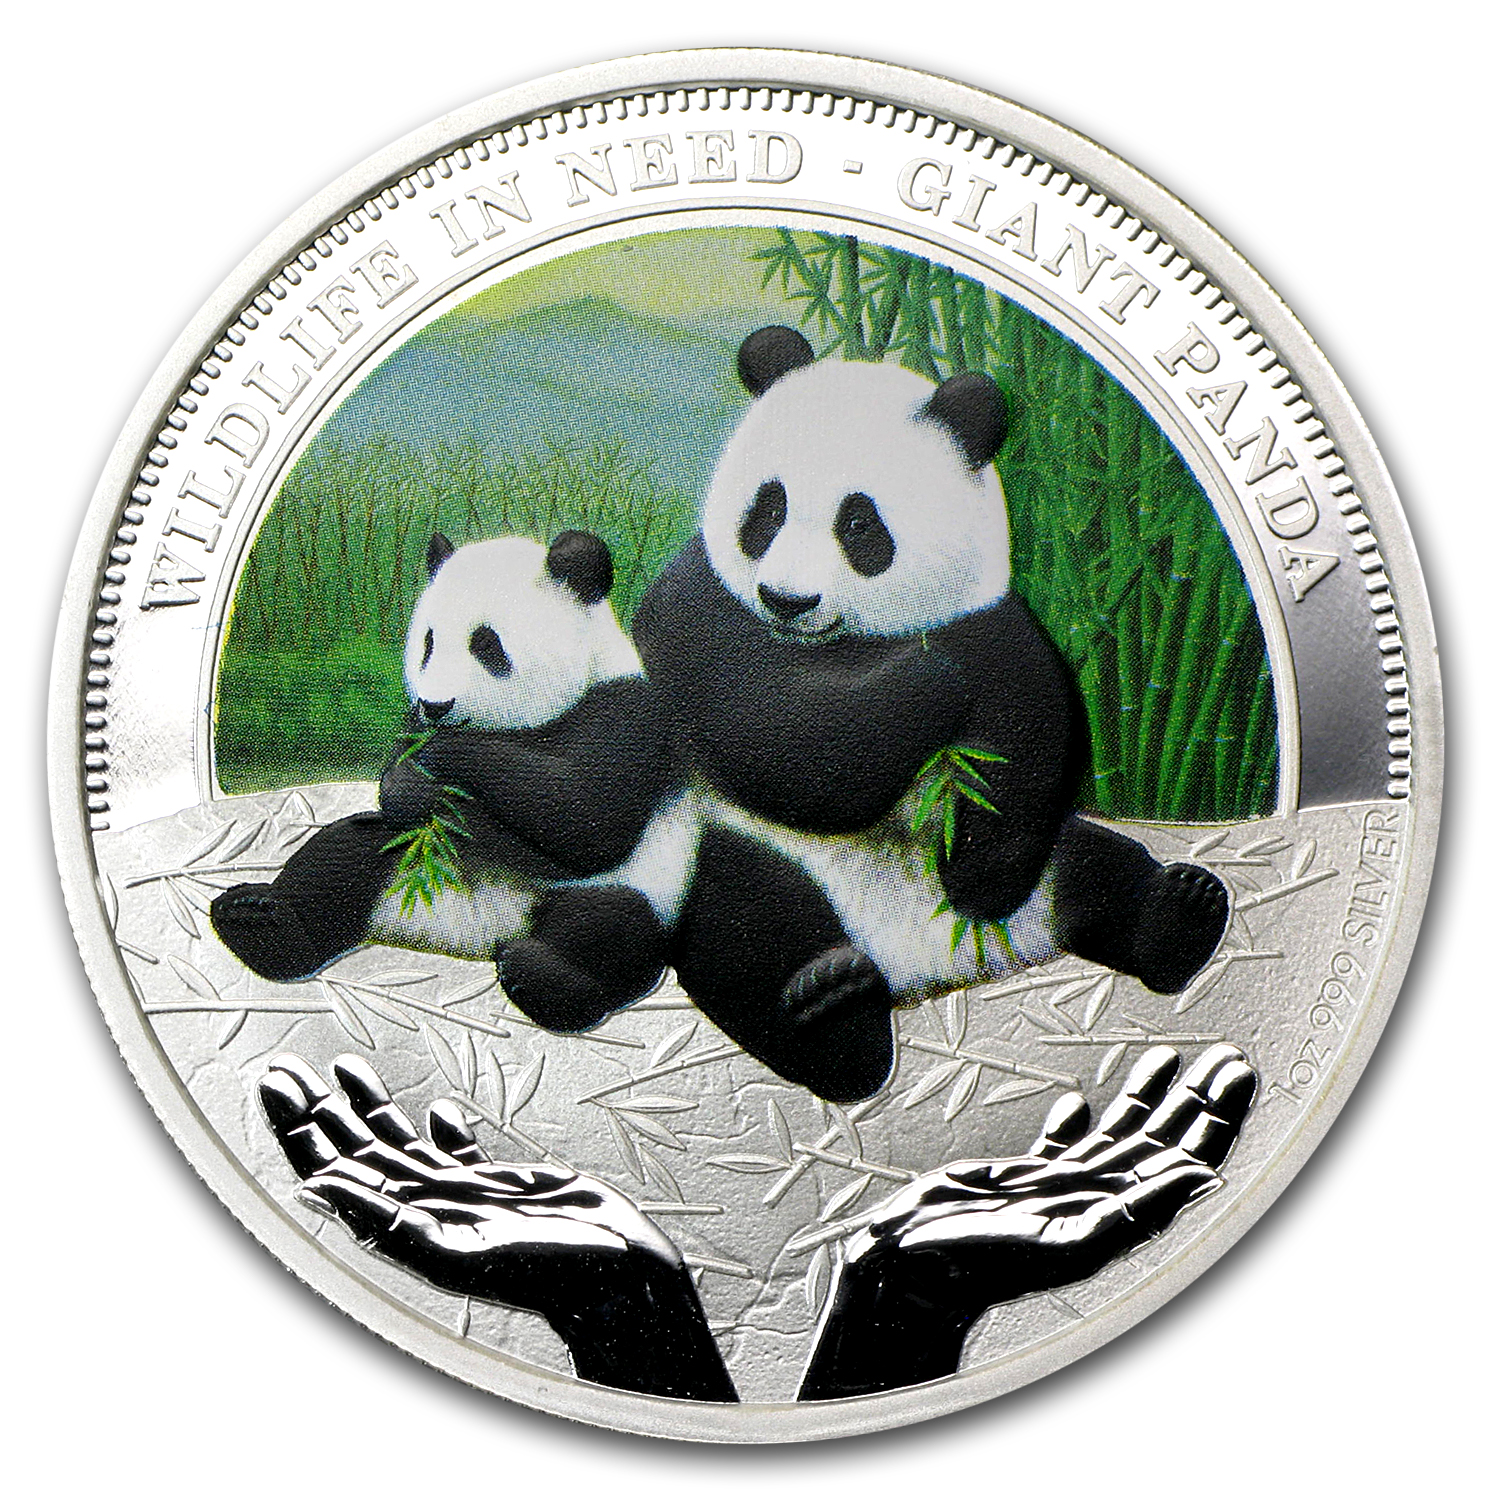 2011 1 oz Silver Tuvalu Giant Panda Proof